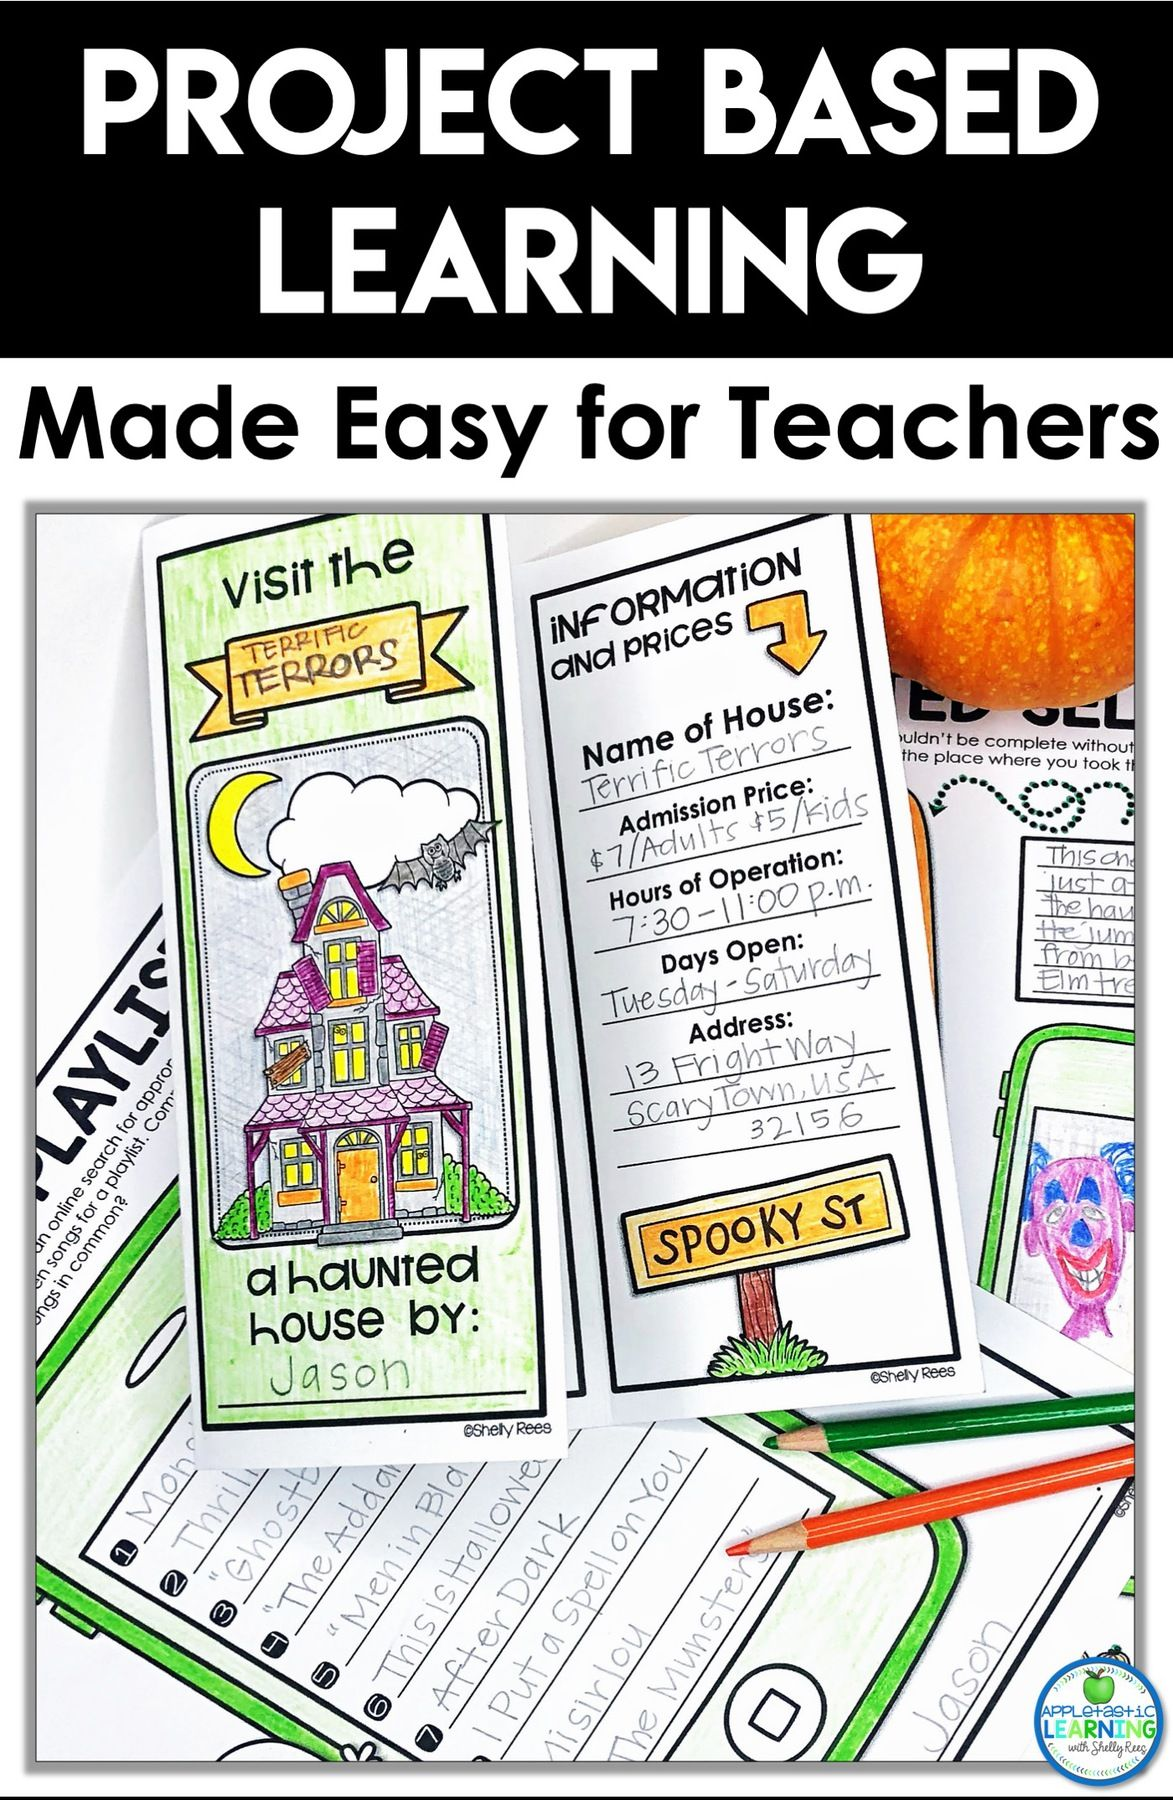 Project Based Learning Made Easy Appletastic Learning Project Based Learning Teaching Printables Halloween Teaching [ 1800 x 1173 Pixel ]